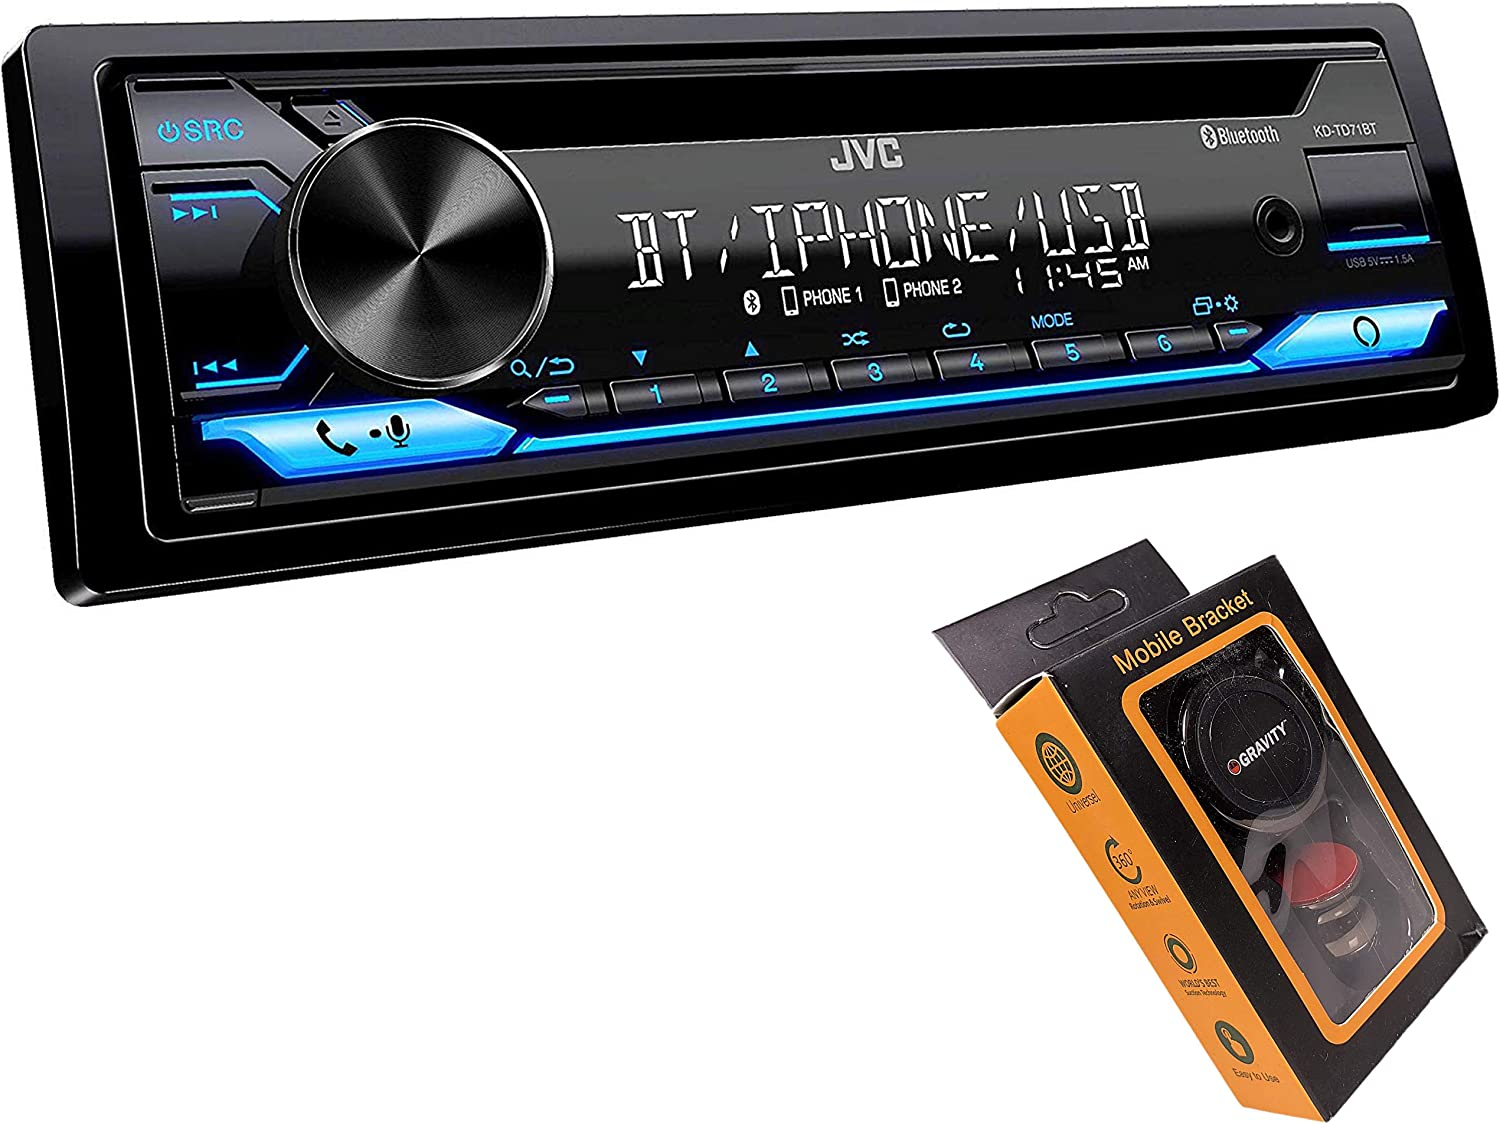 Alexa with Magnet Phone Holder JVC KD-TD71BT Front USB CD Receiver Featuring Bluetooth AUX